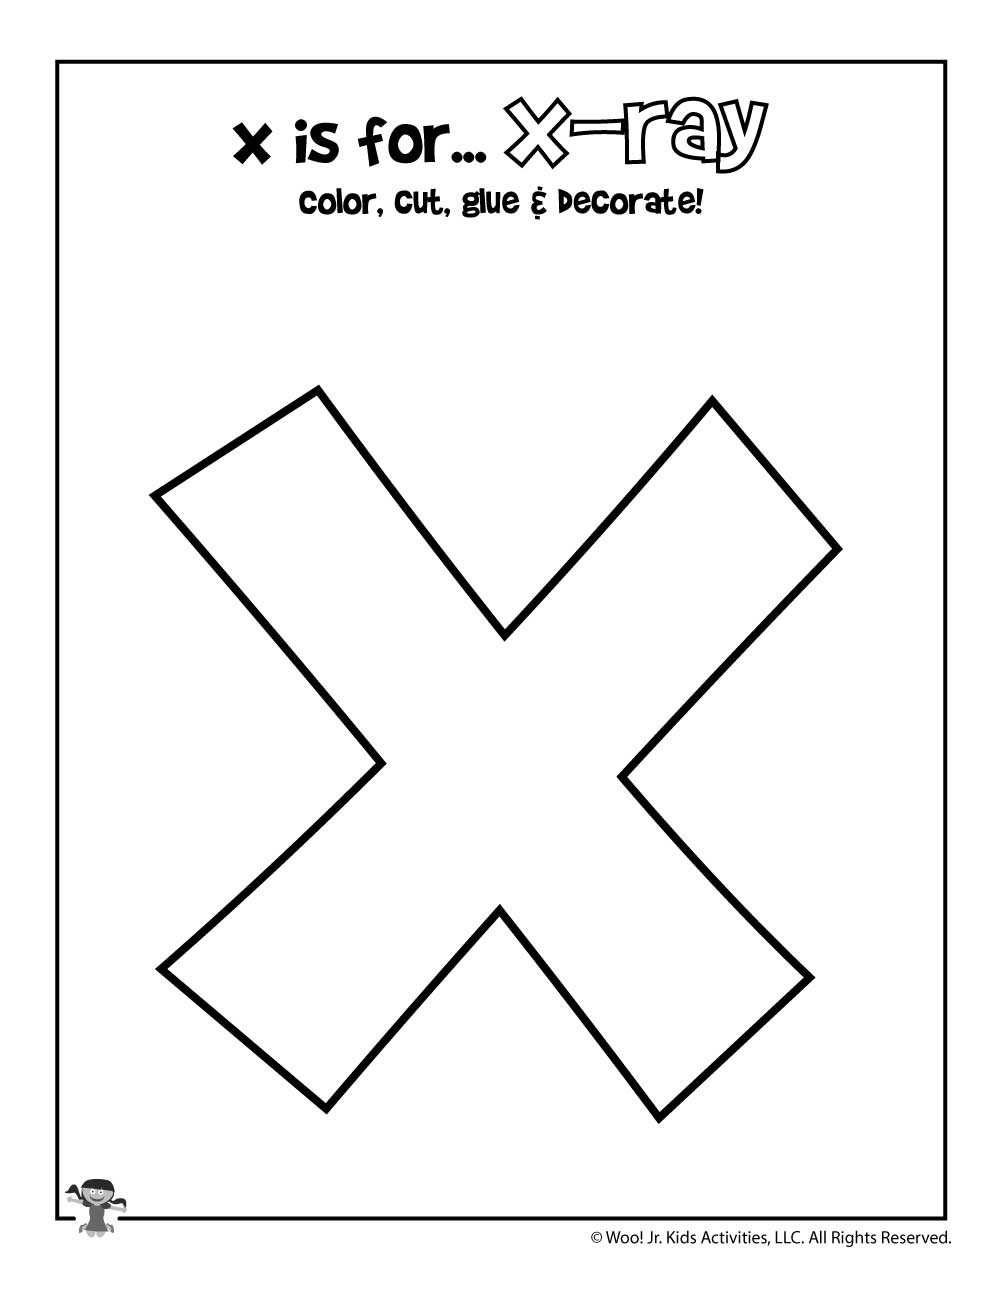 Preschool Letter X Worksheets Printable Letter X Craft